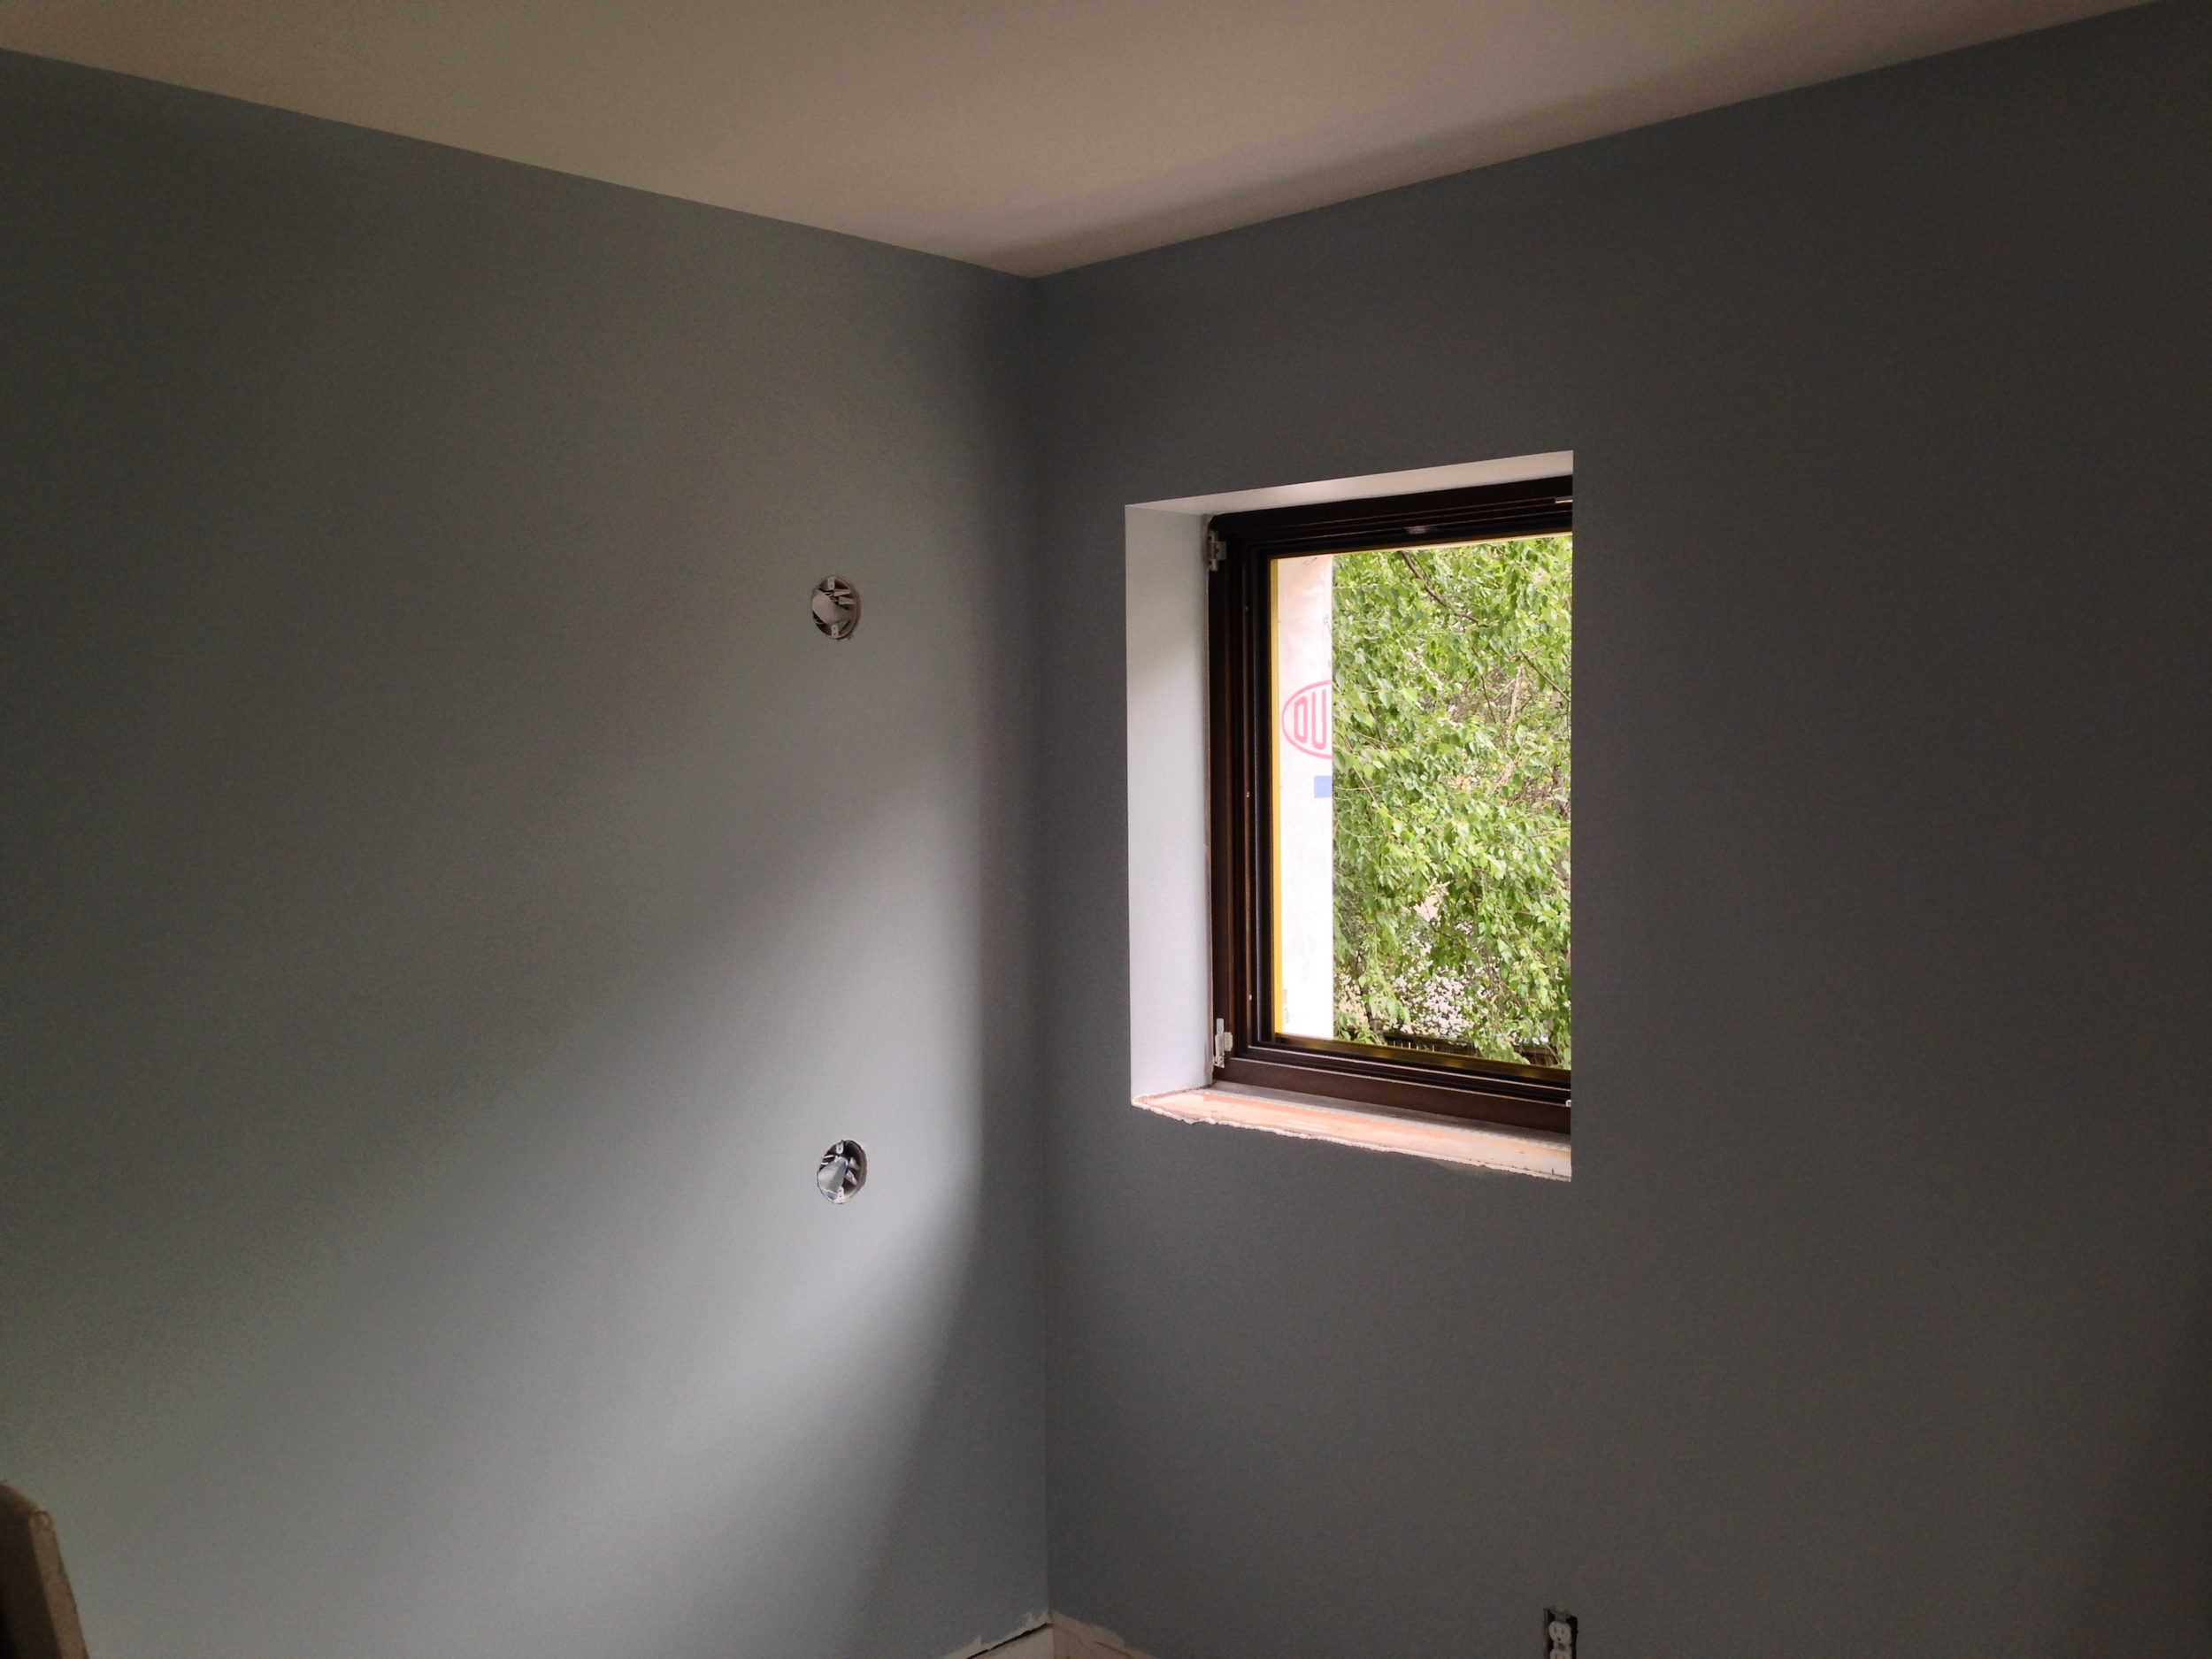 Boys' bunk bed nook, ready for wall-mounted reading lights